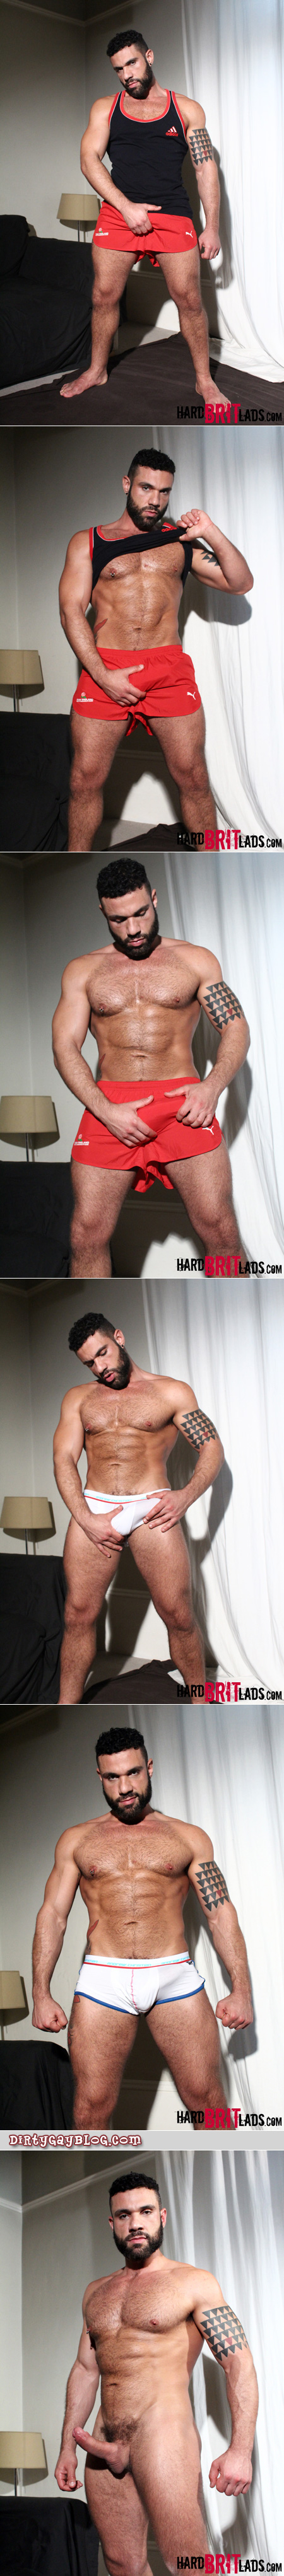 Hairy muscle god in athletic shorts and tight white briefs sporting a hard-on.